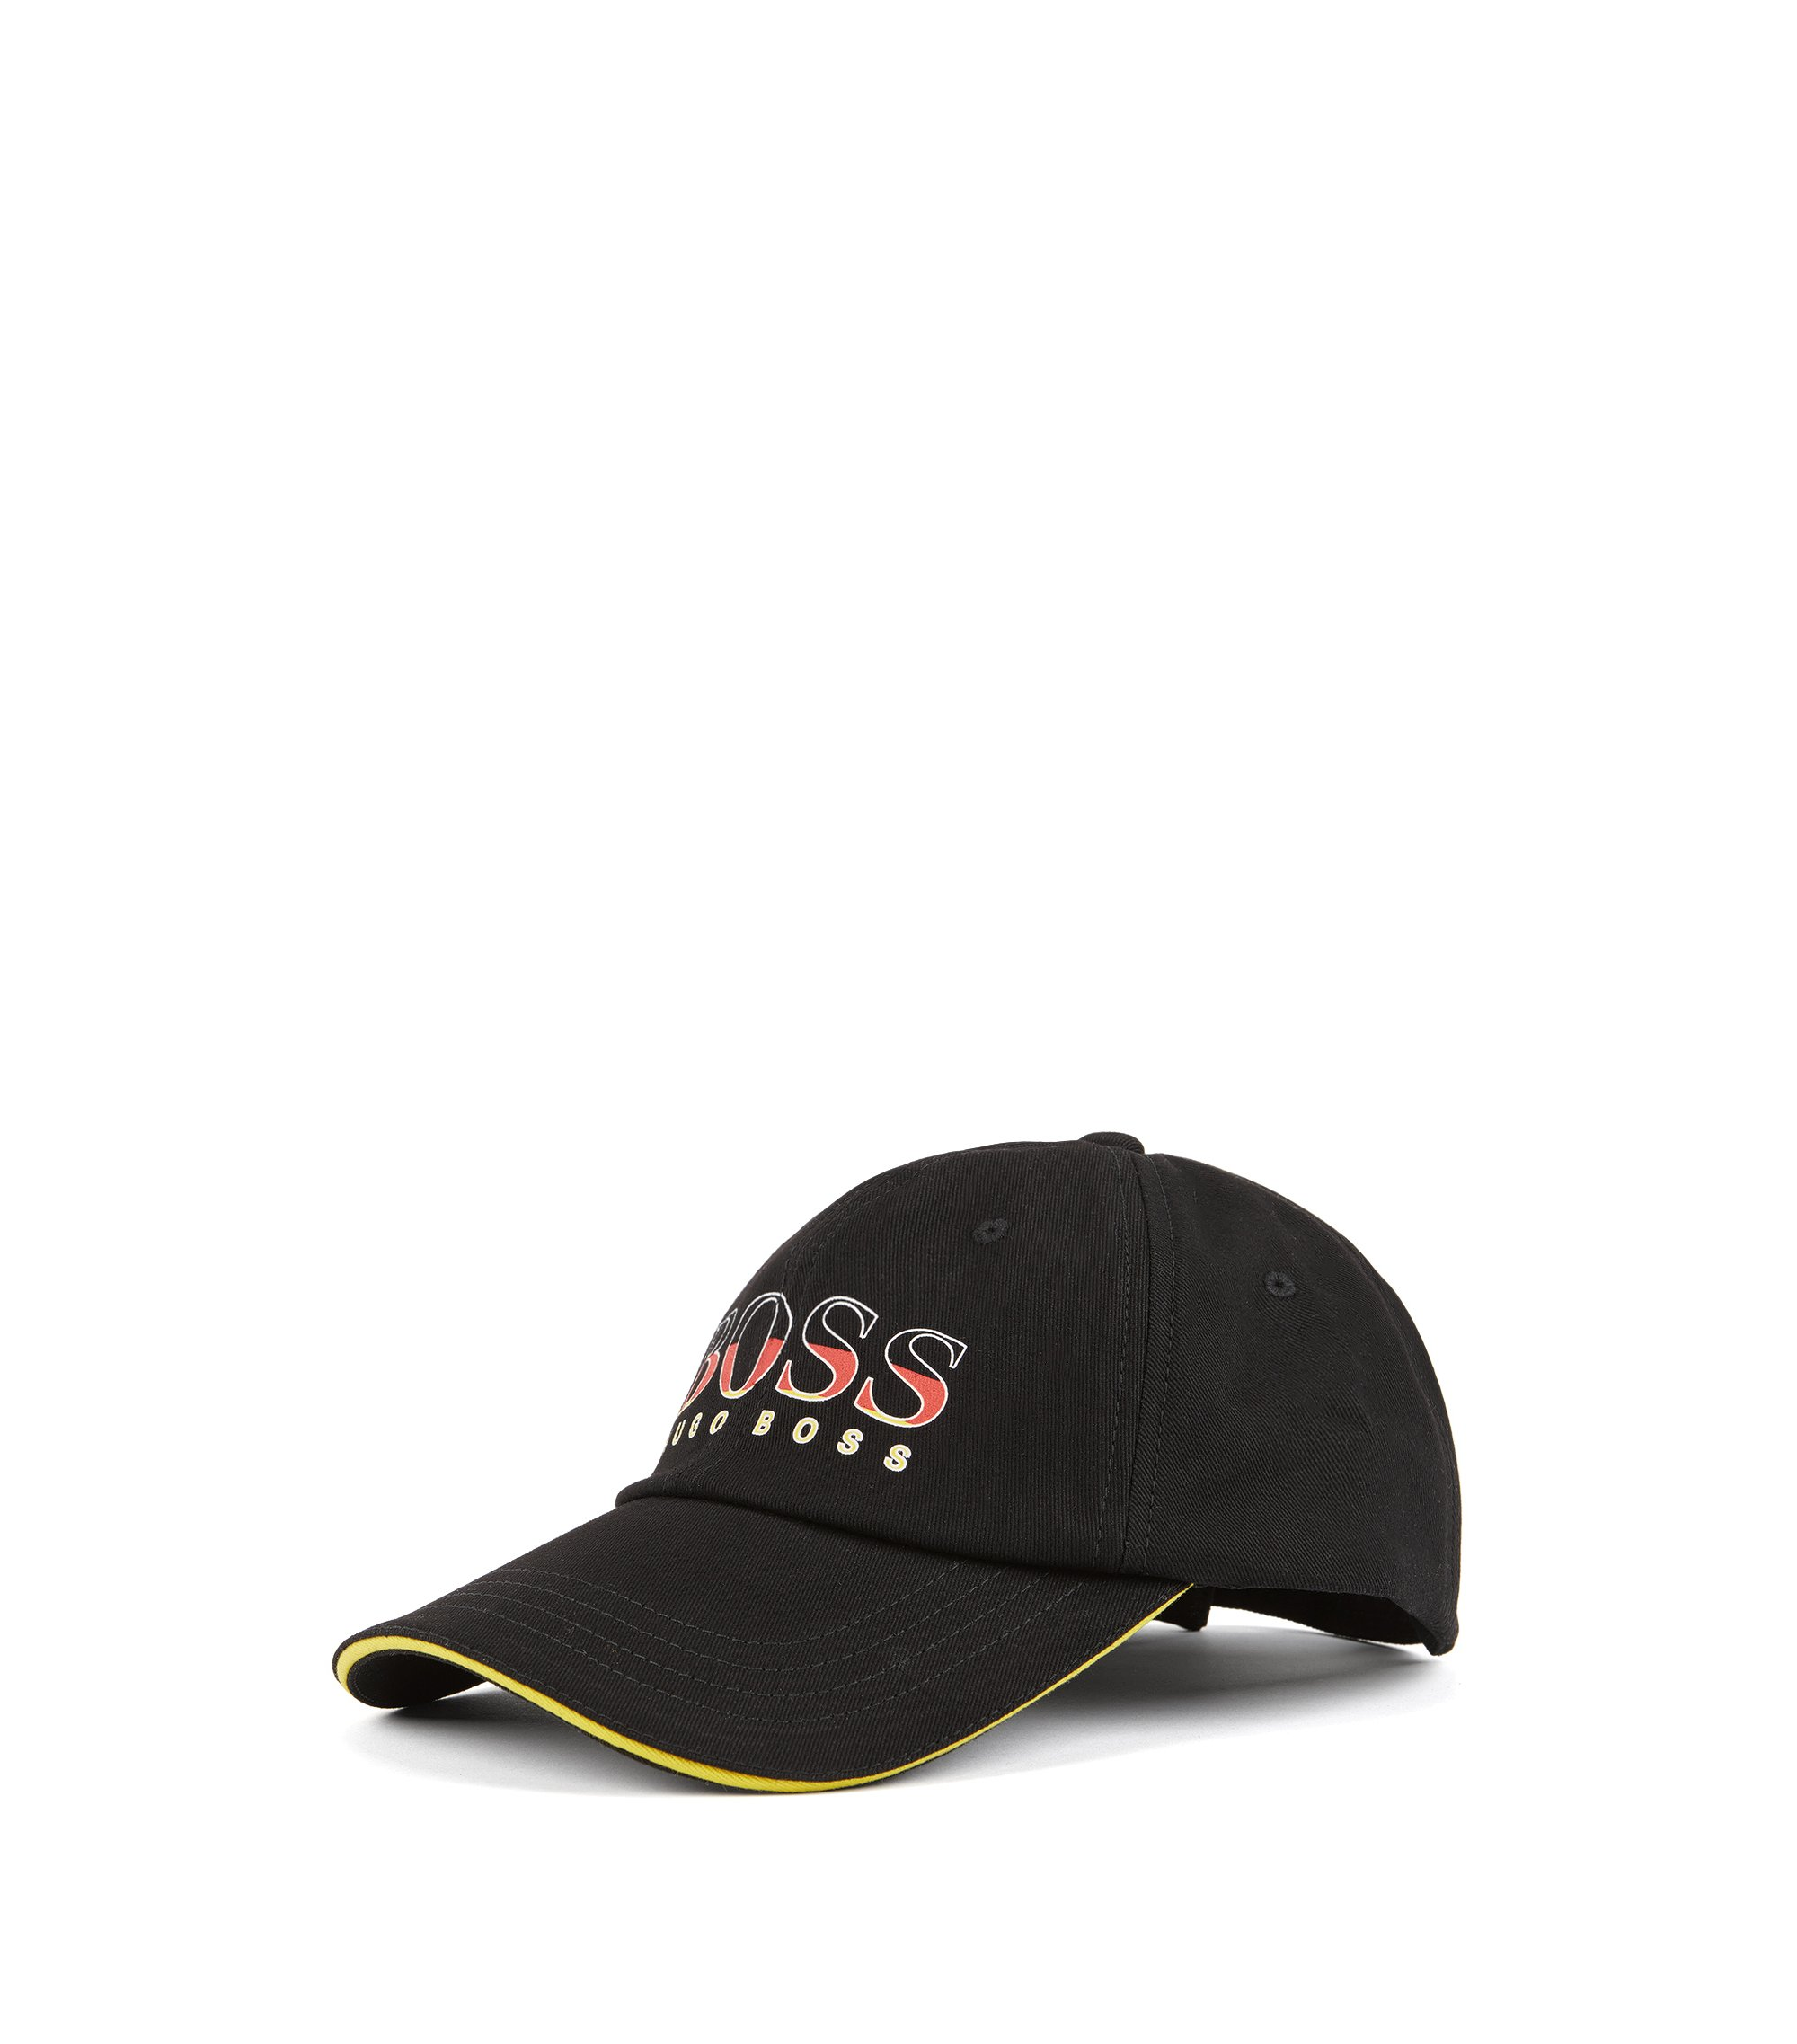 Kids' cap in cotton twill with Germany's team colours, Patterned